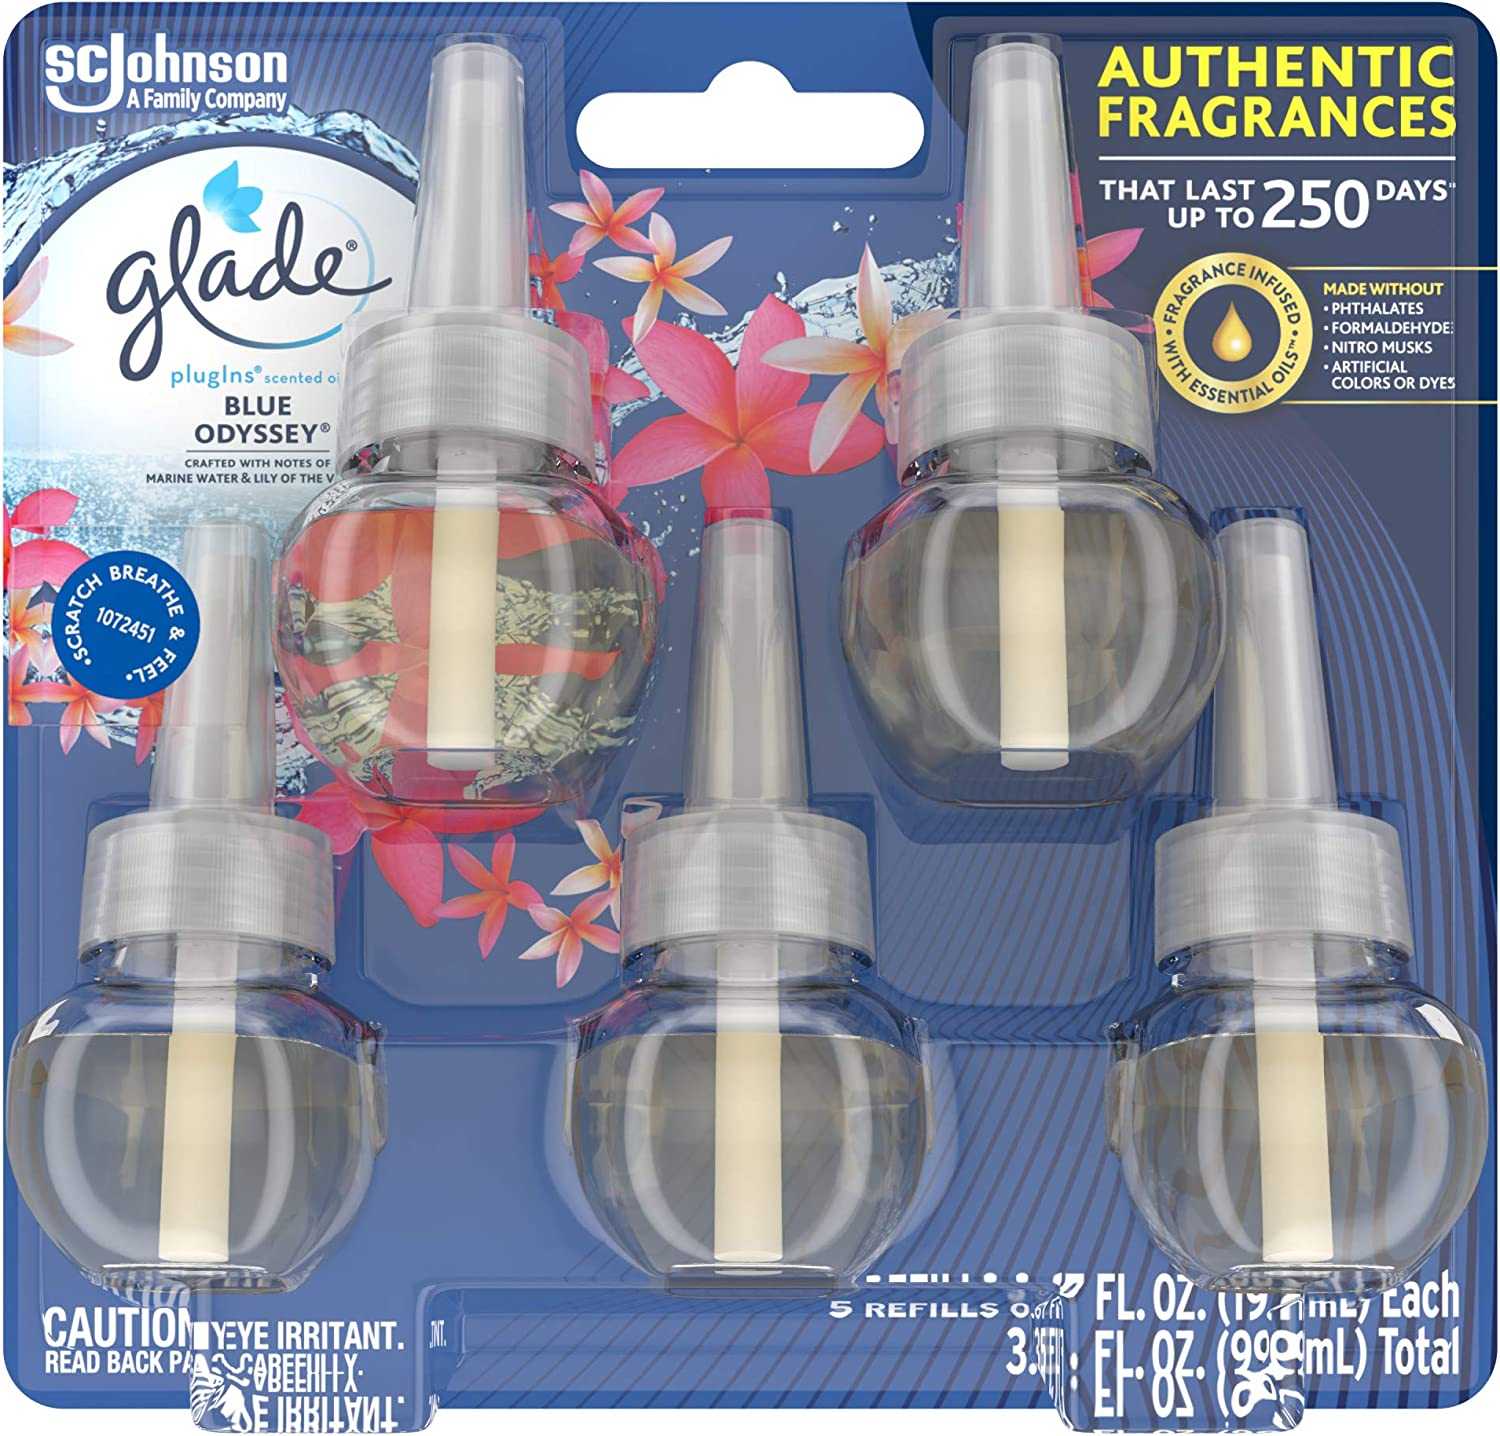 Glade PlugIns Refills Air Freshener, Scented and Essential Oils for Home and Bathroom, Blue Odyssey, 3.35 Fl Oz, 5 Count